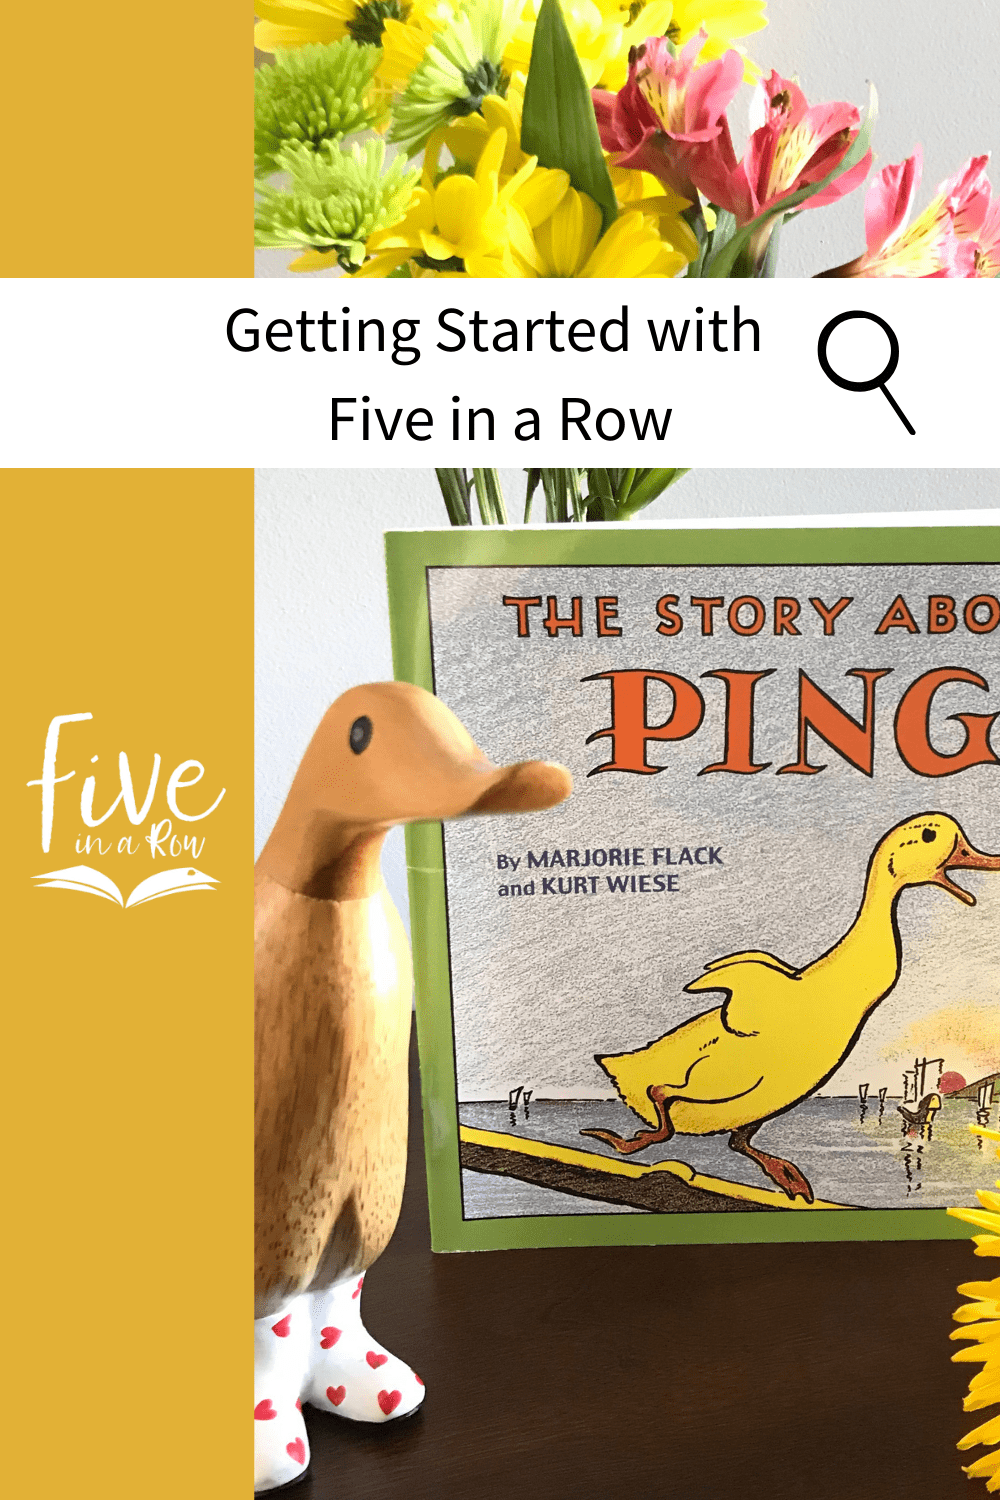 Getting Started with Five in a Row is so easy, see what the Botch family's first week was like.  It's so easy and fun using your favorite picture books!